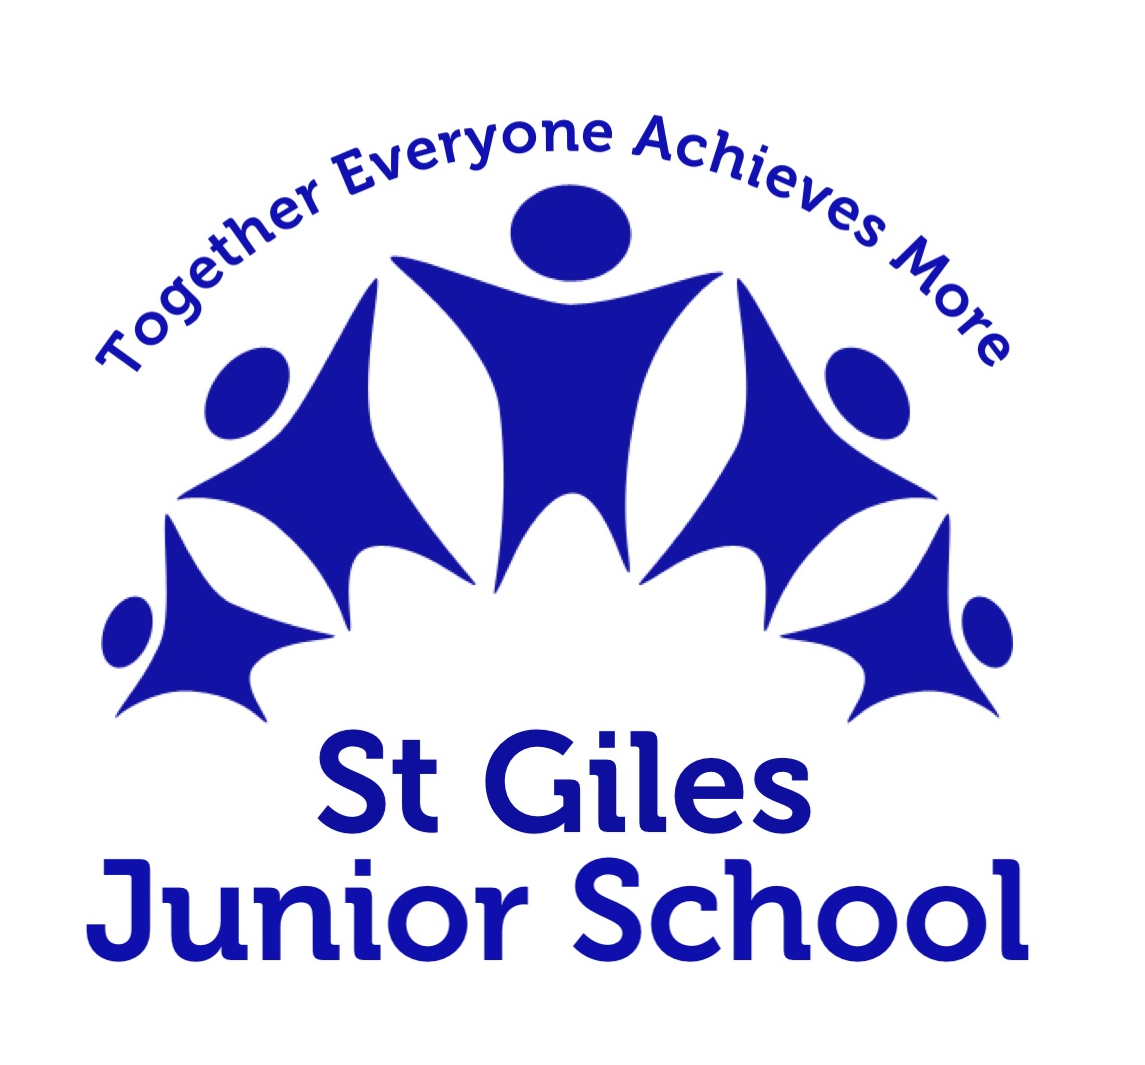 St. Giles Junior School